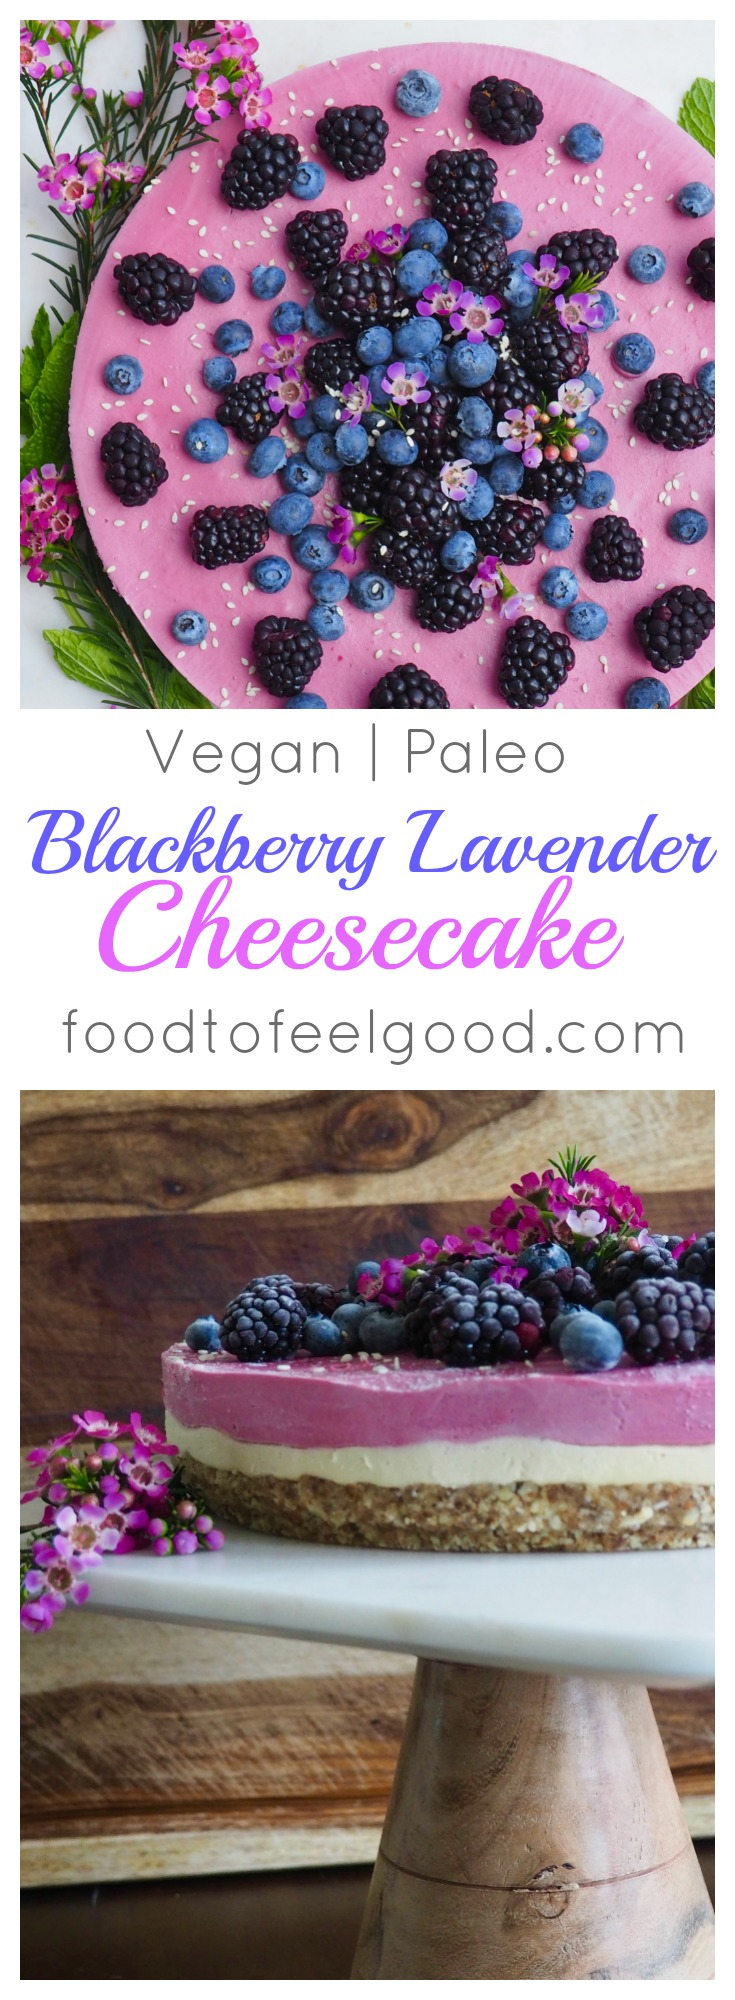 Raw | Vegan | Paleo | Blackberry Lavender Cheesecake - this delicious seasonal dessert is an impressive treat for any special occasion, that will please all dietary needs! #veganrecipes #paleo #healthyrecipes #desserts